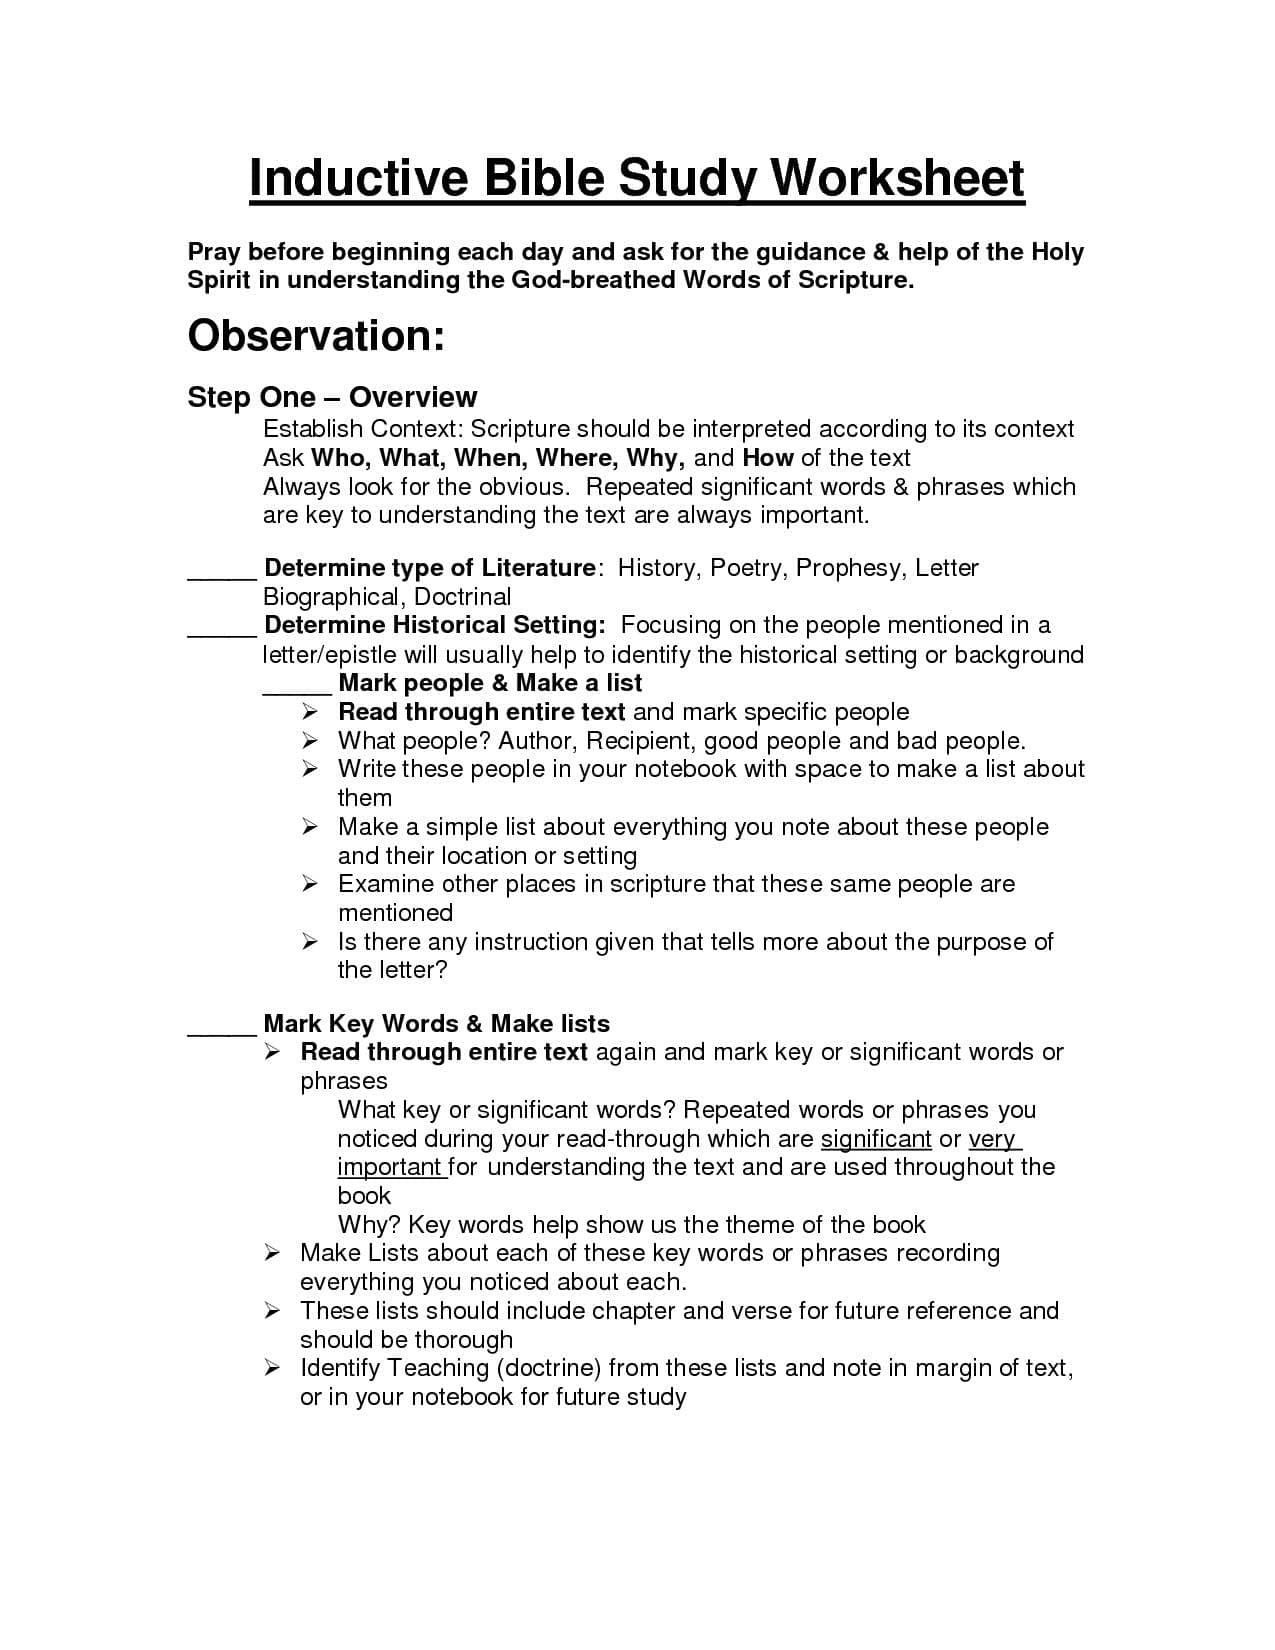 Bible Worksheets For Youth in 2020 (With images) | Bible ...